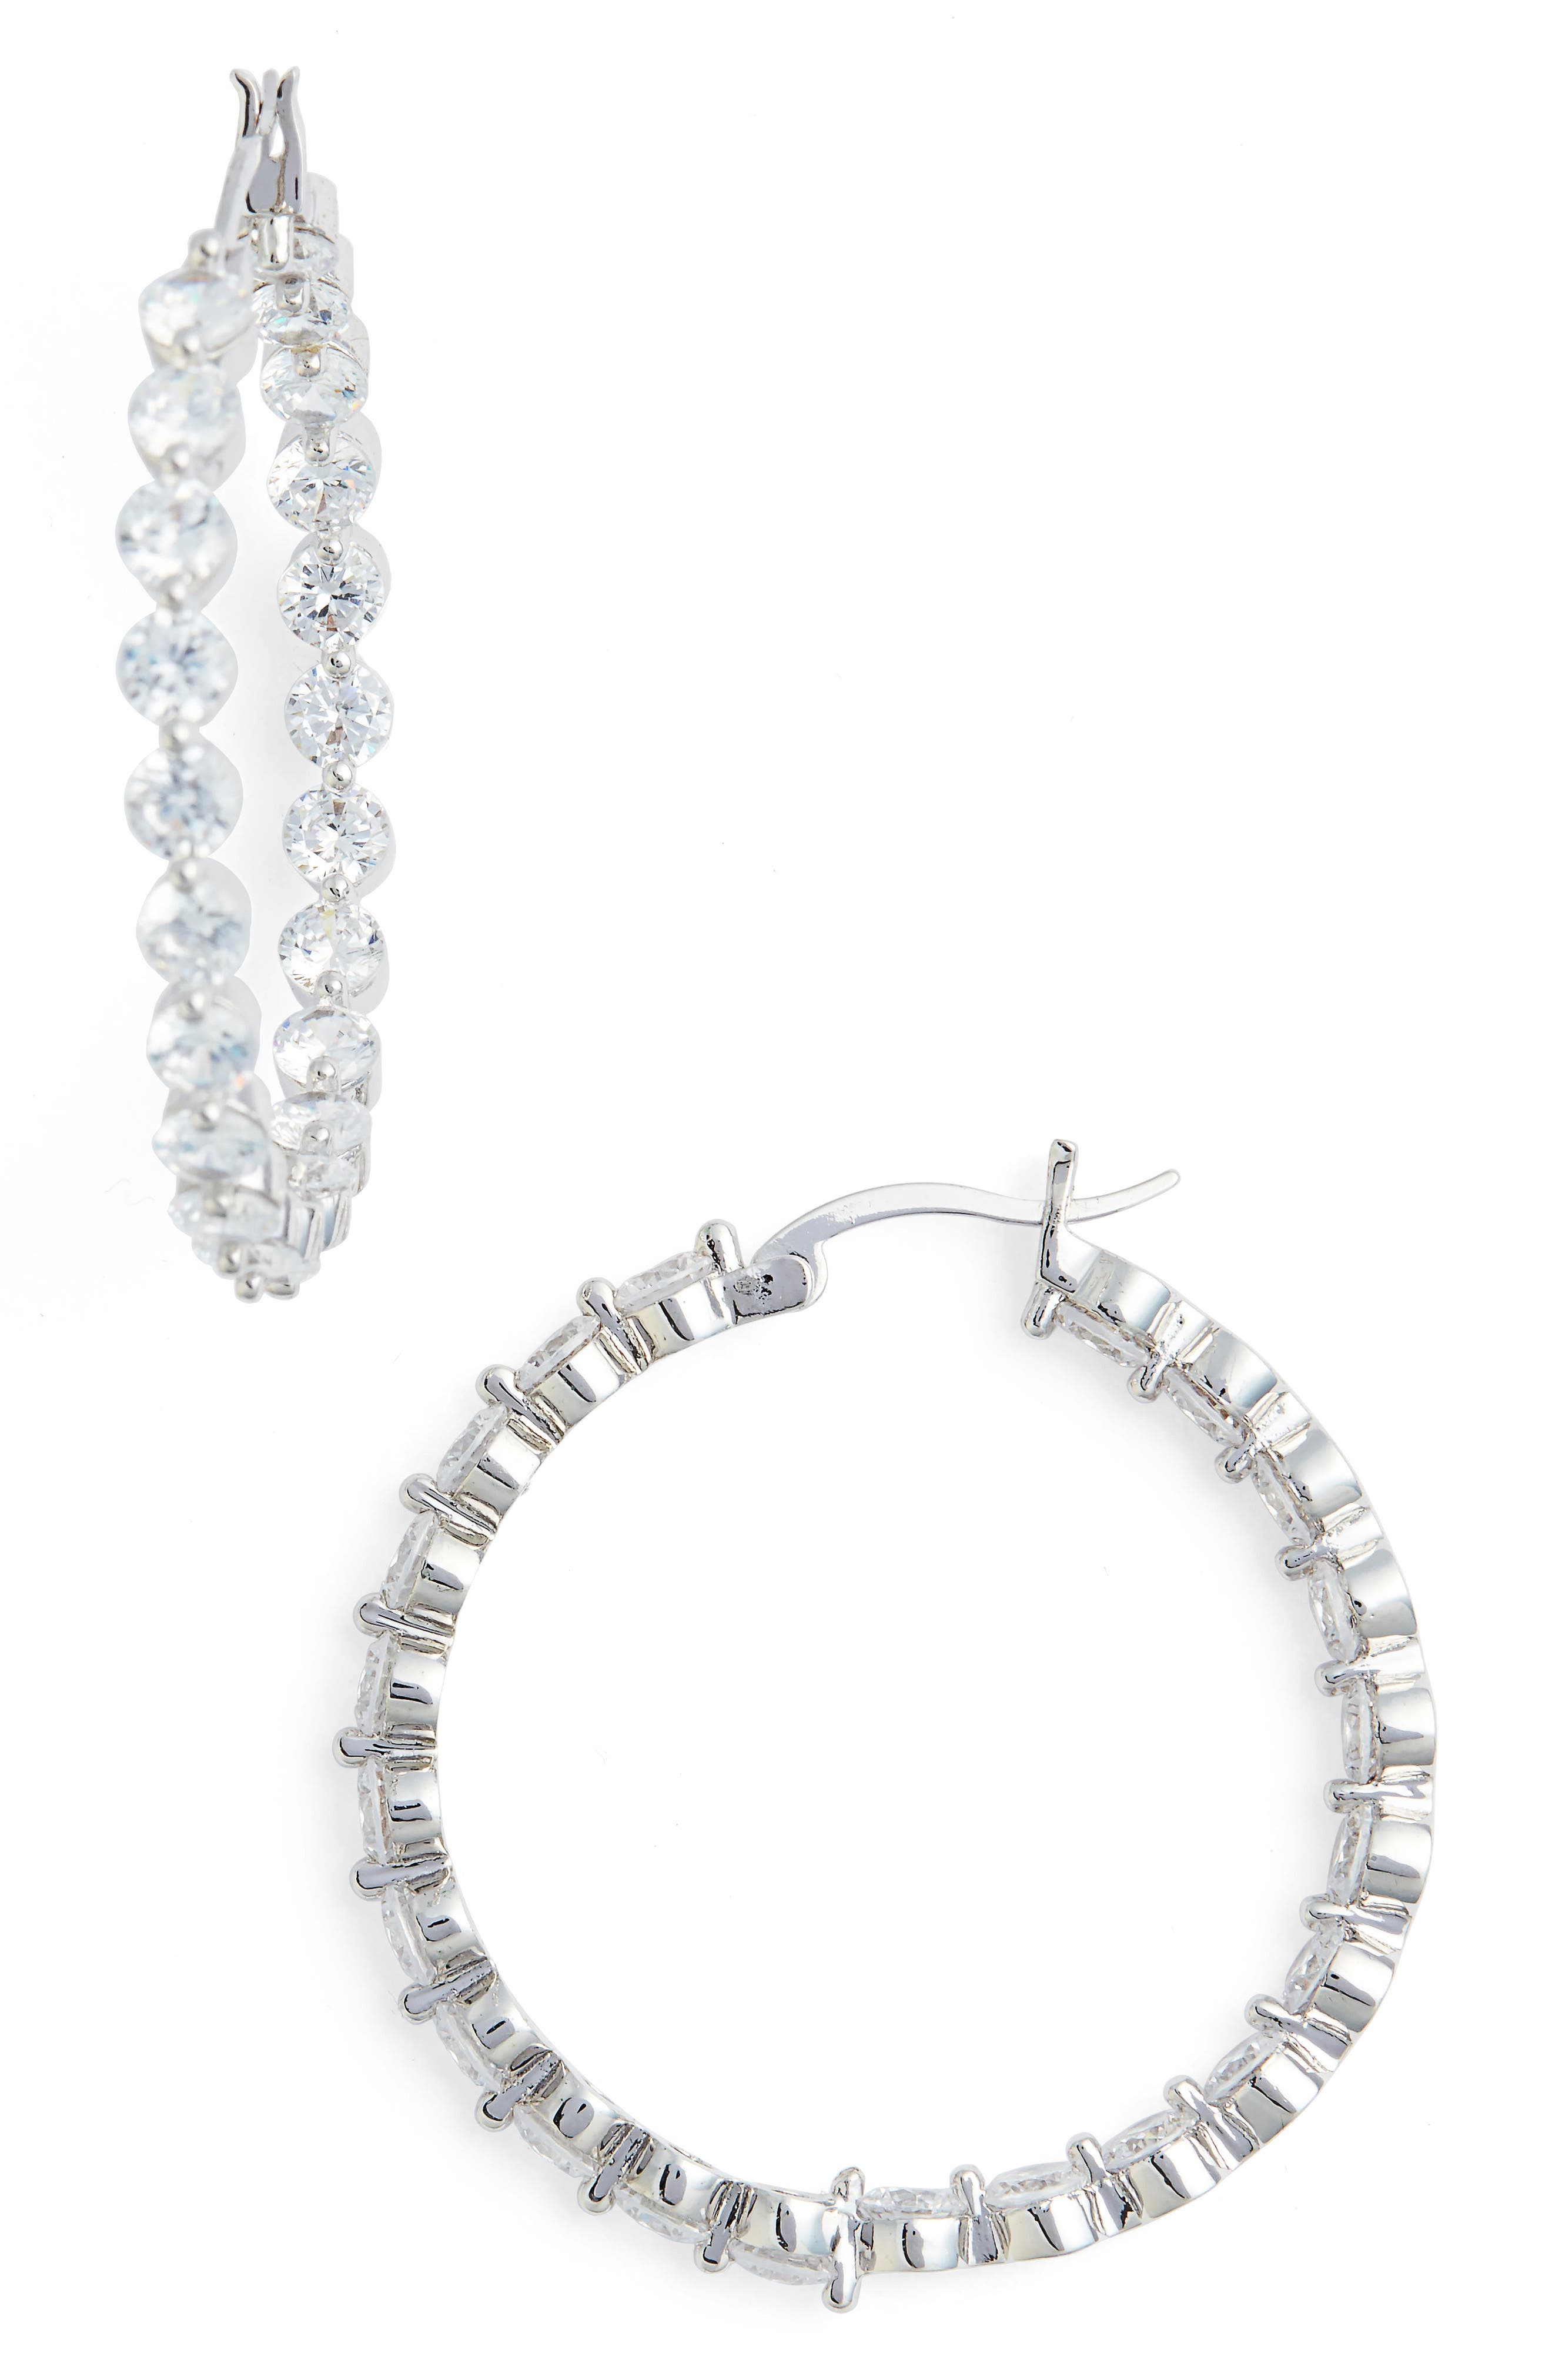 Large Cubic Zirconia Hoop Earrings.,                         Main,                         color, Silver/ White Cz